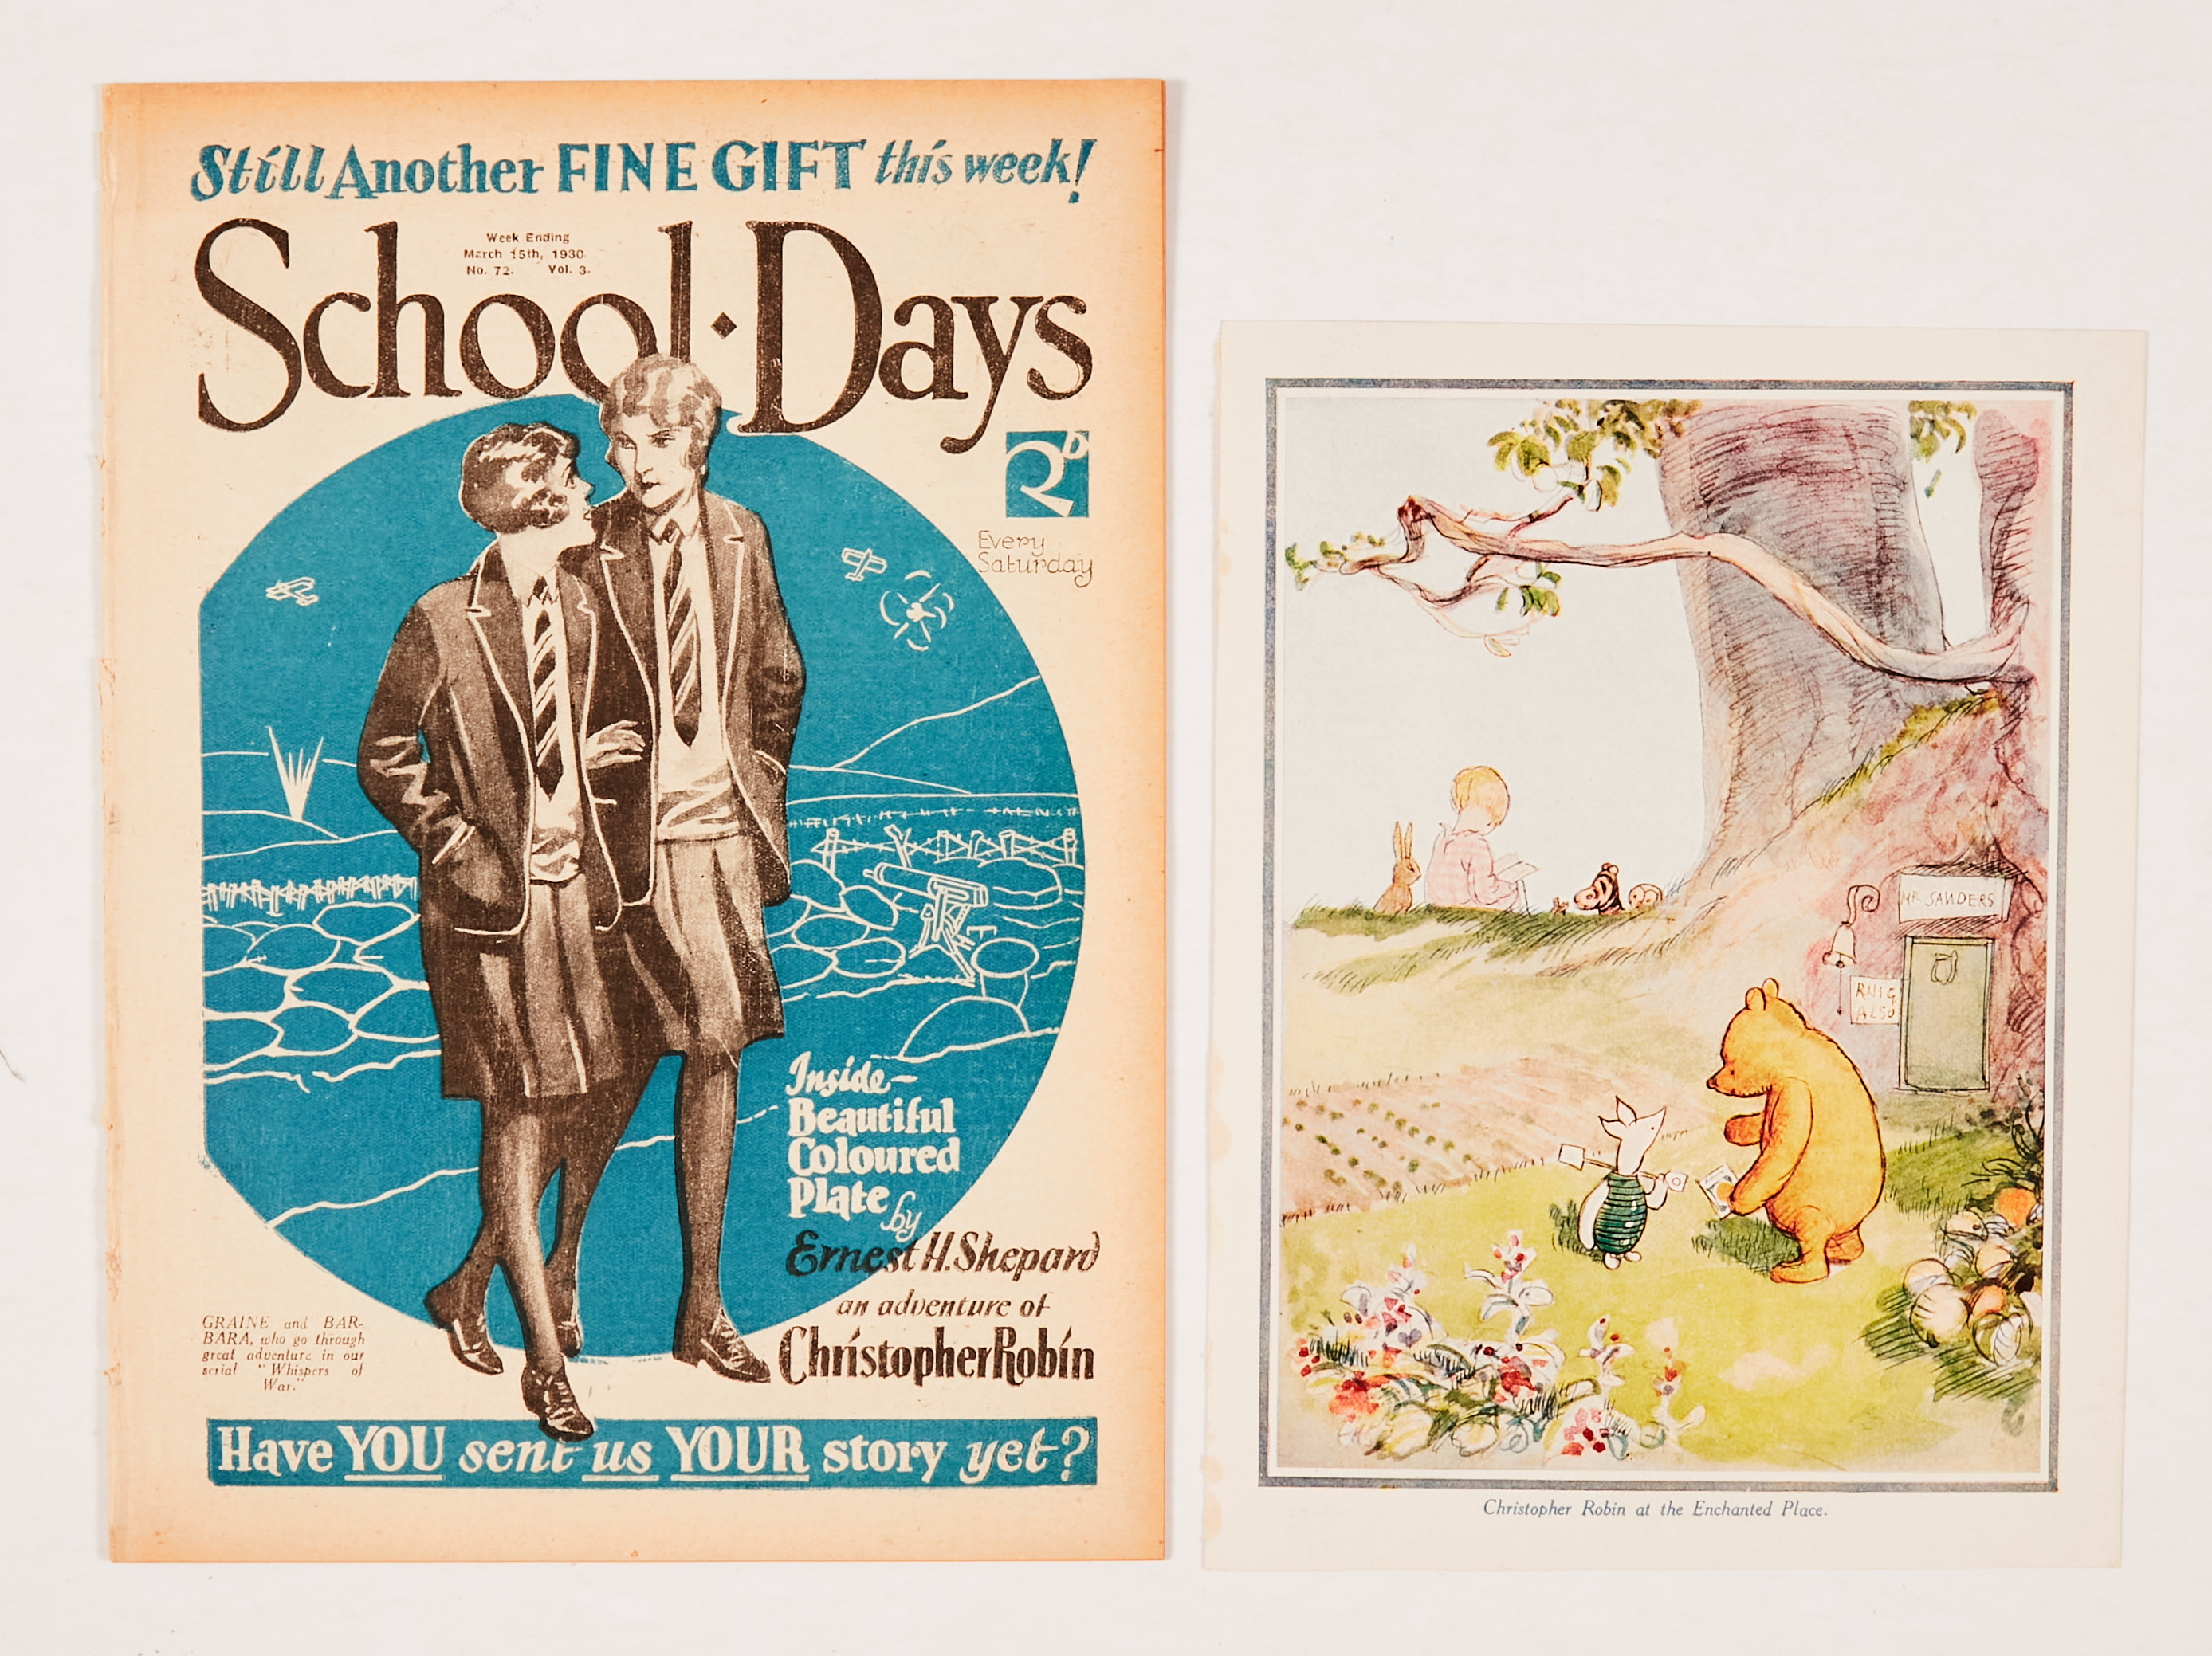 School Days 72 (1930) wfg coloured art plate of 'Christopher Robin at the Enchanted Place' by E.H.